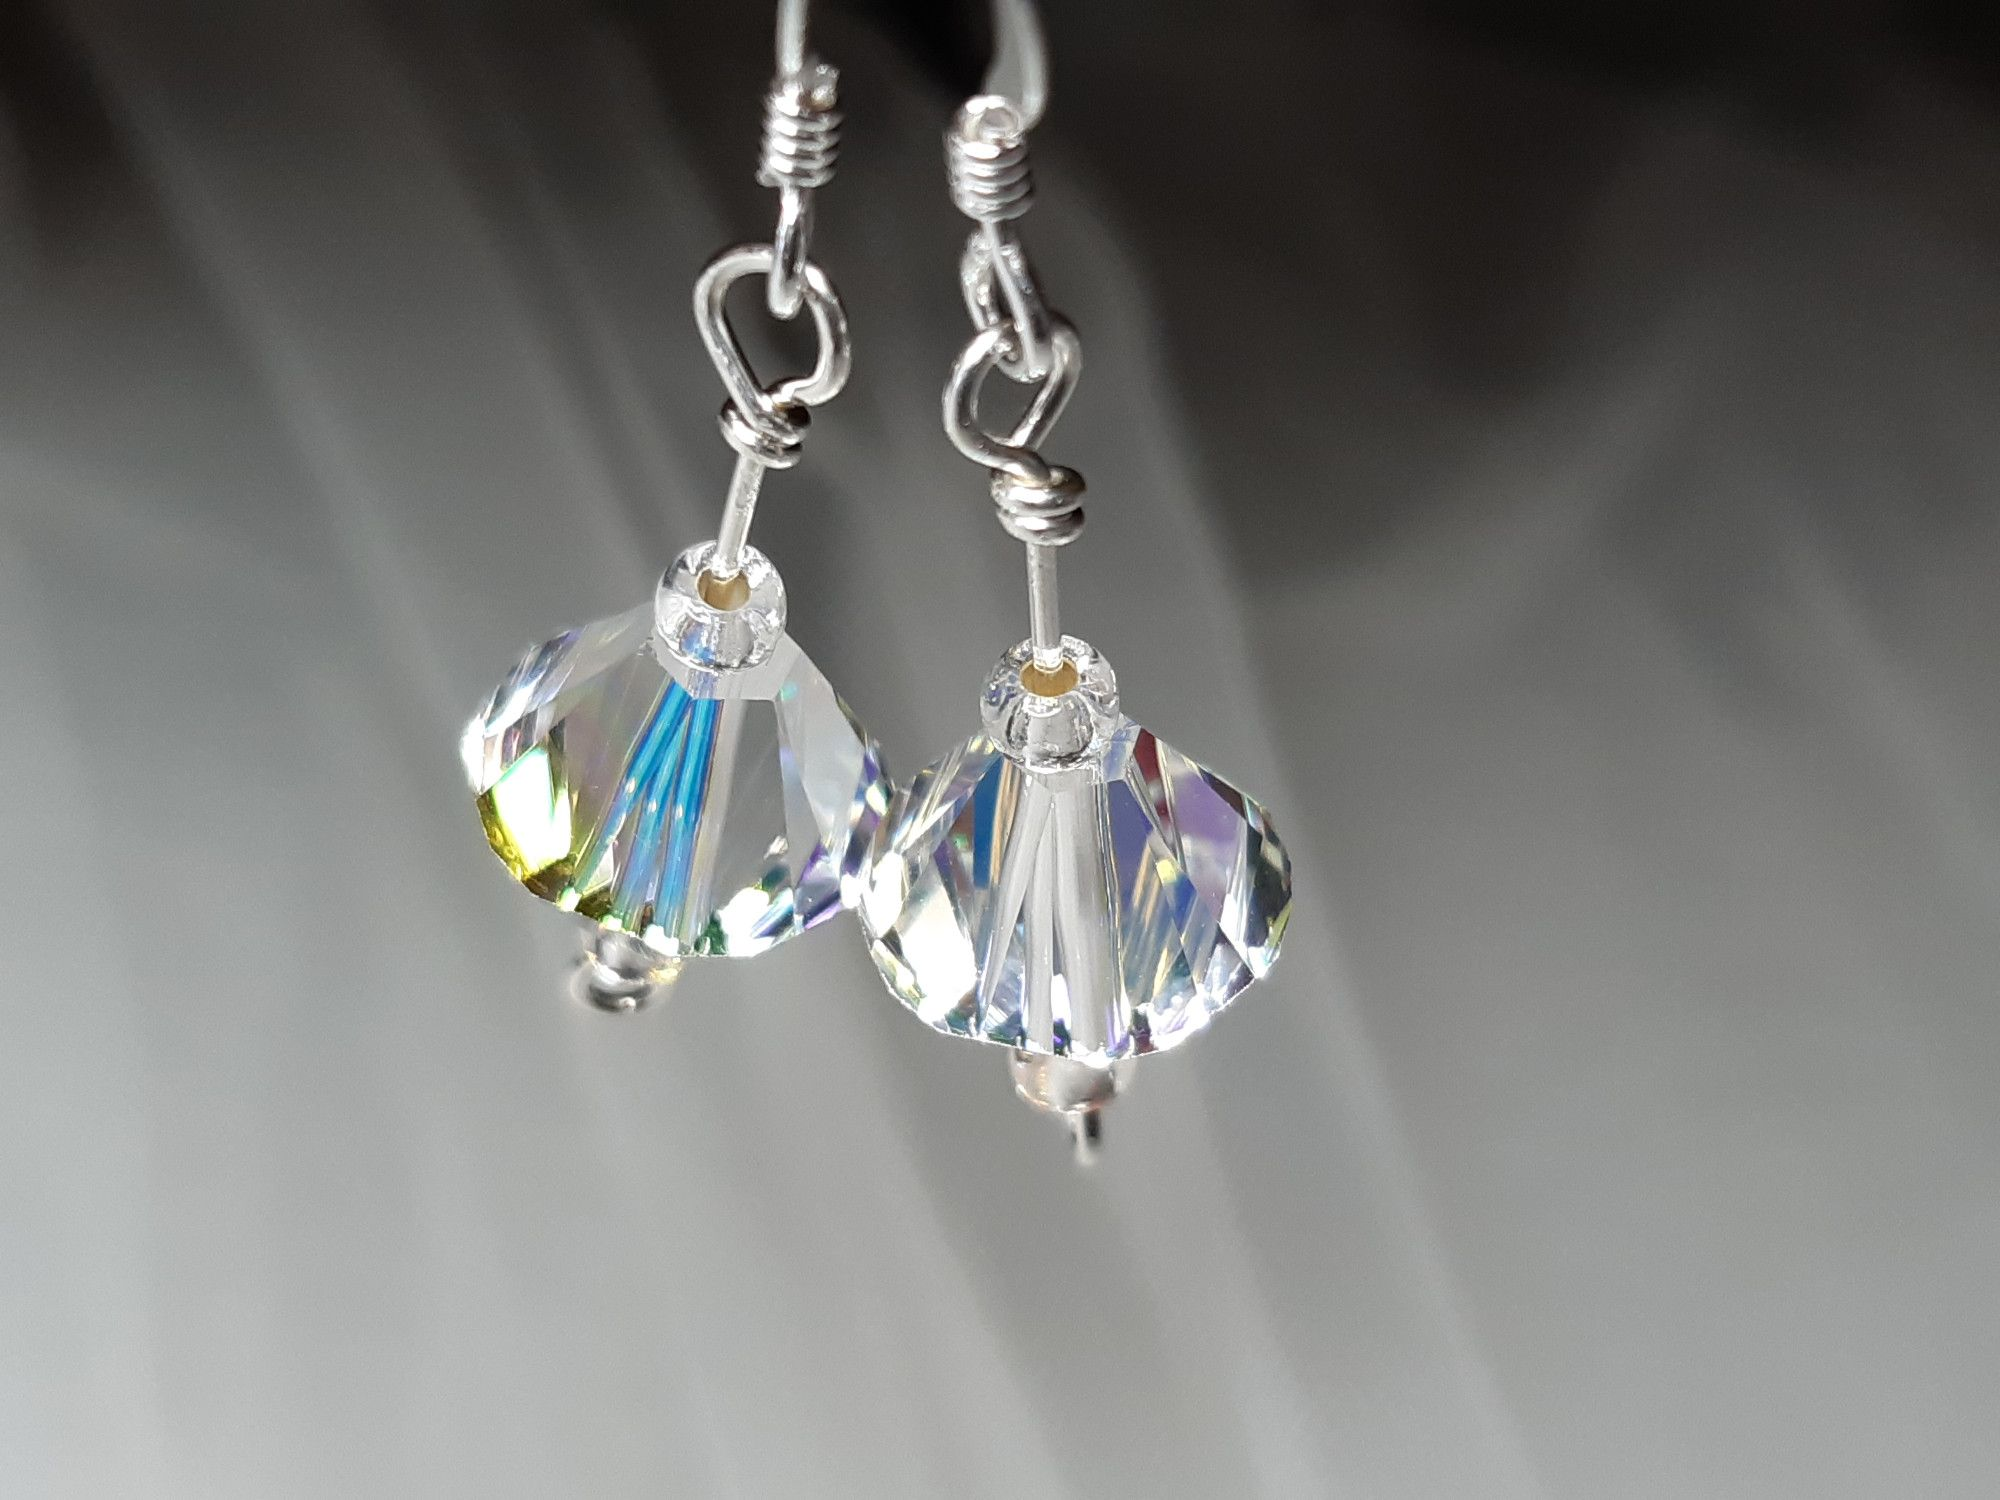 Occasion-wedding-swarovski crystal+sterling silver earrings-5